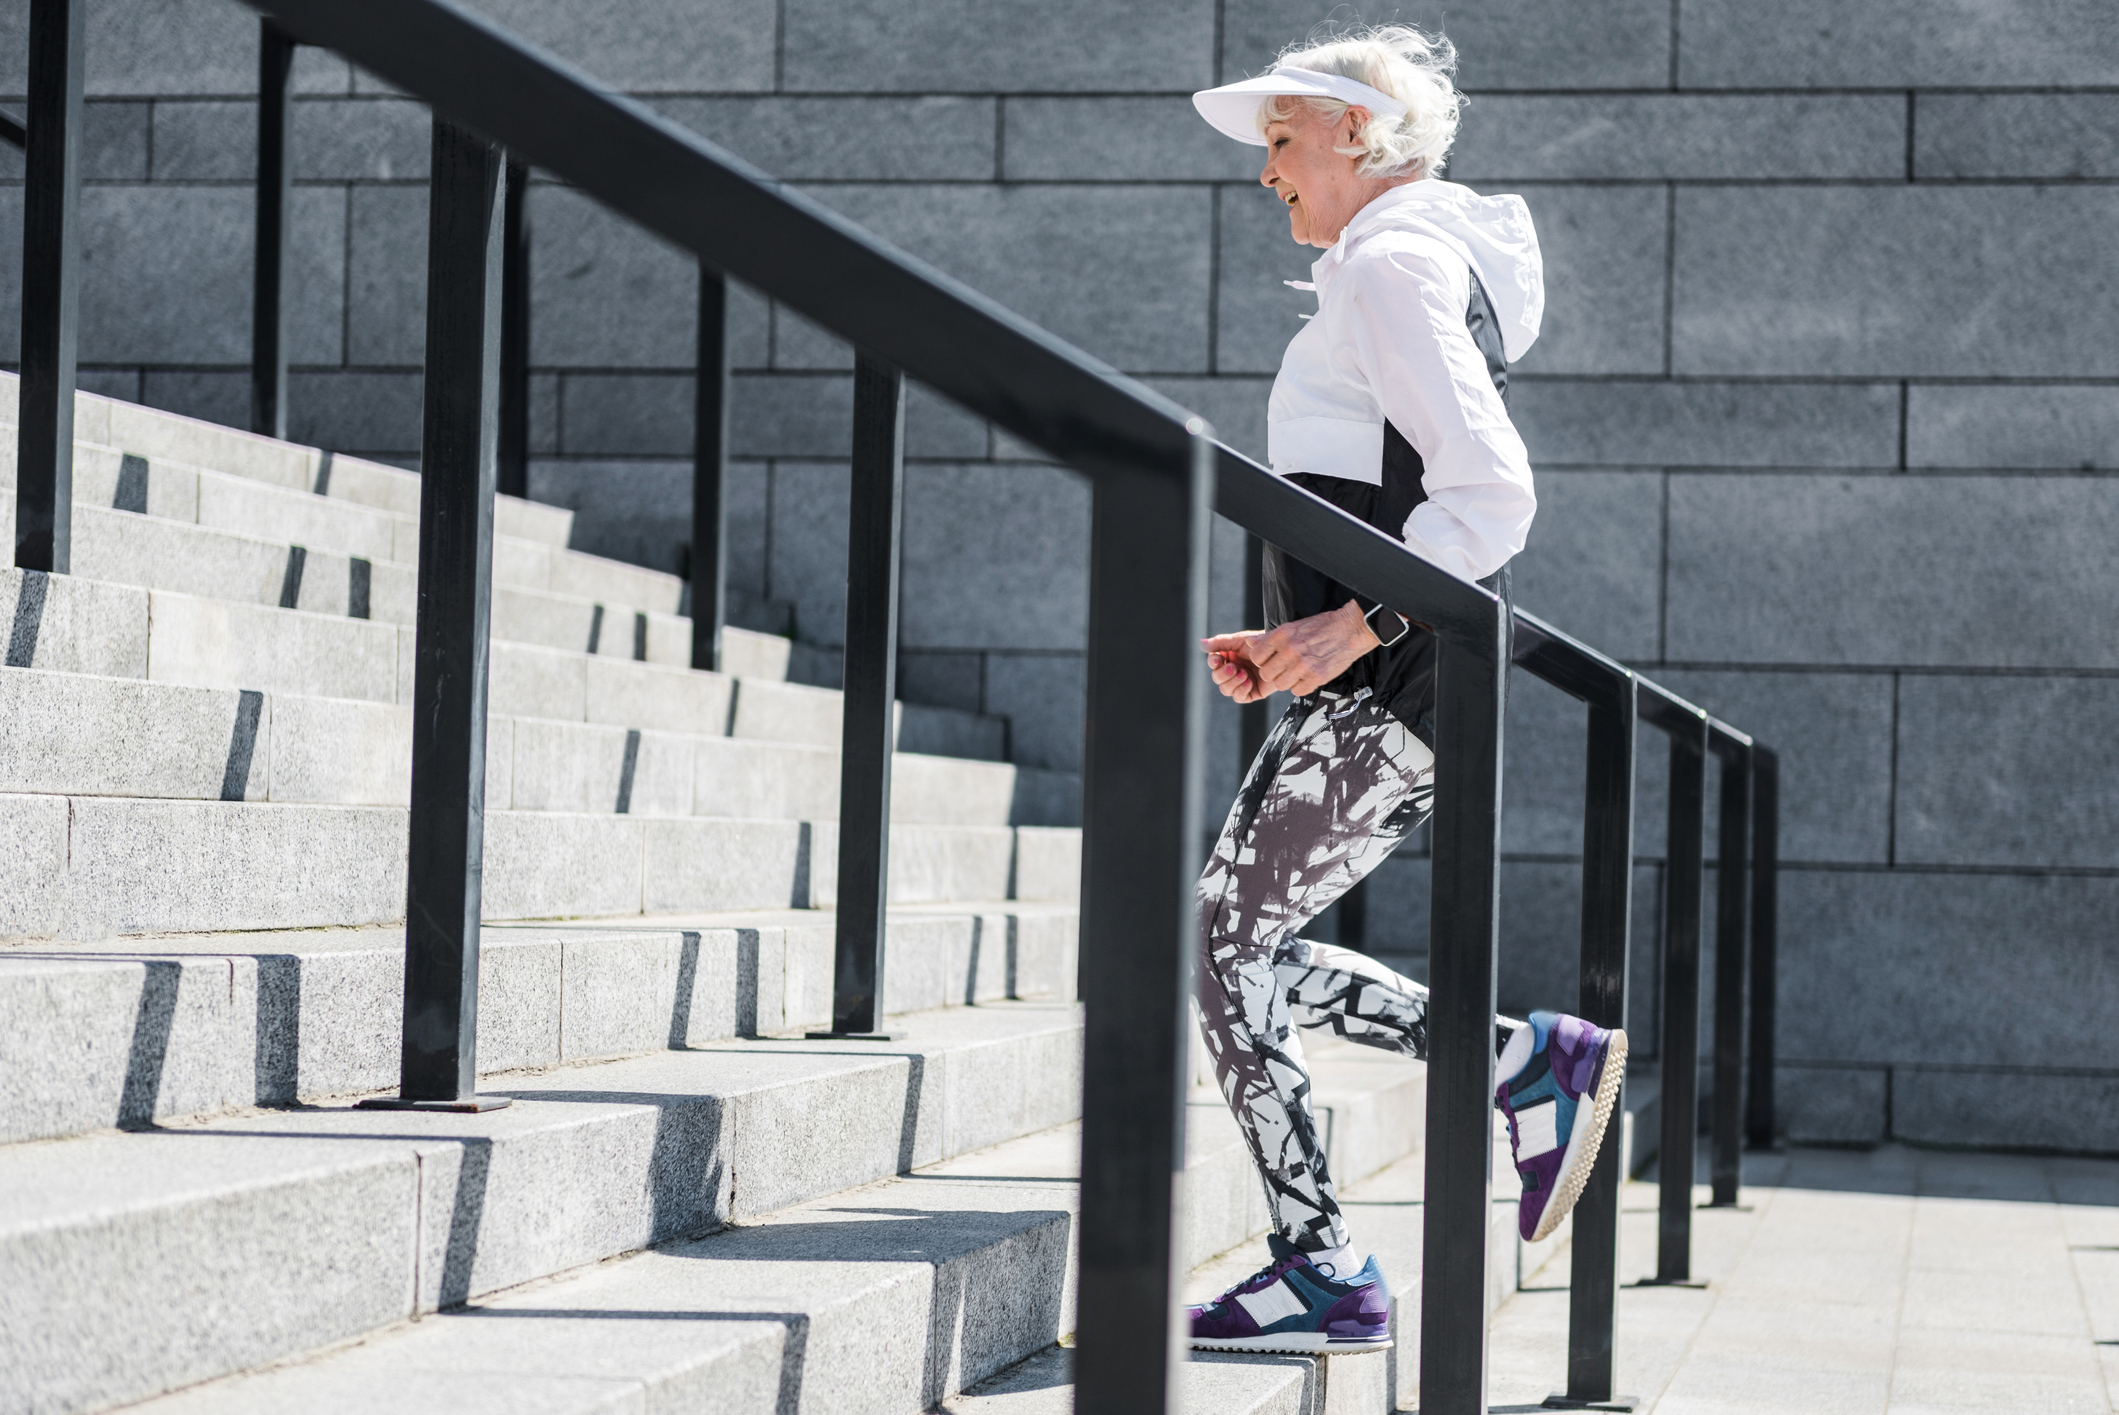 Cheerful-old-lady-training-to-run-up-concrete-stairs-696208932_2123x1417.jpeg